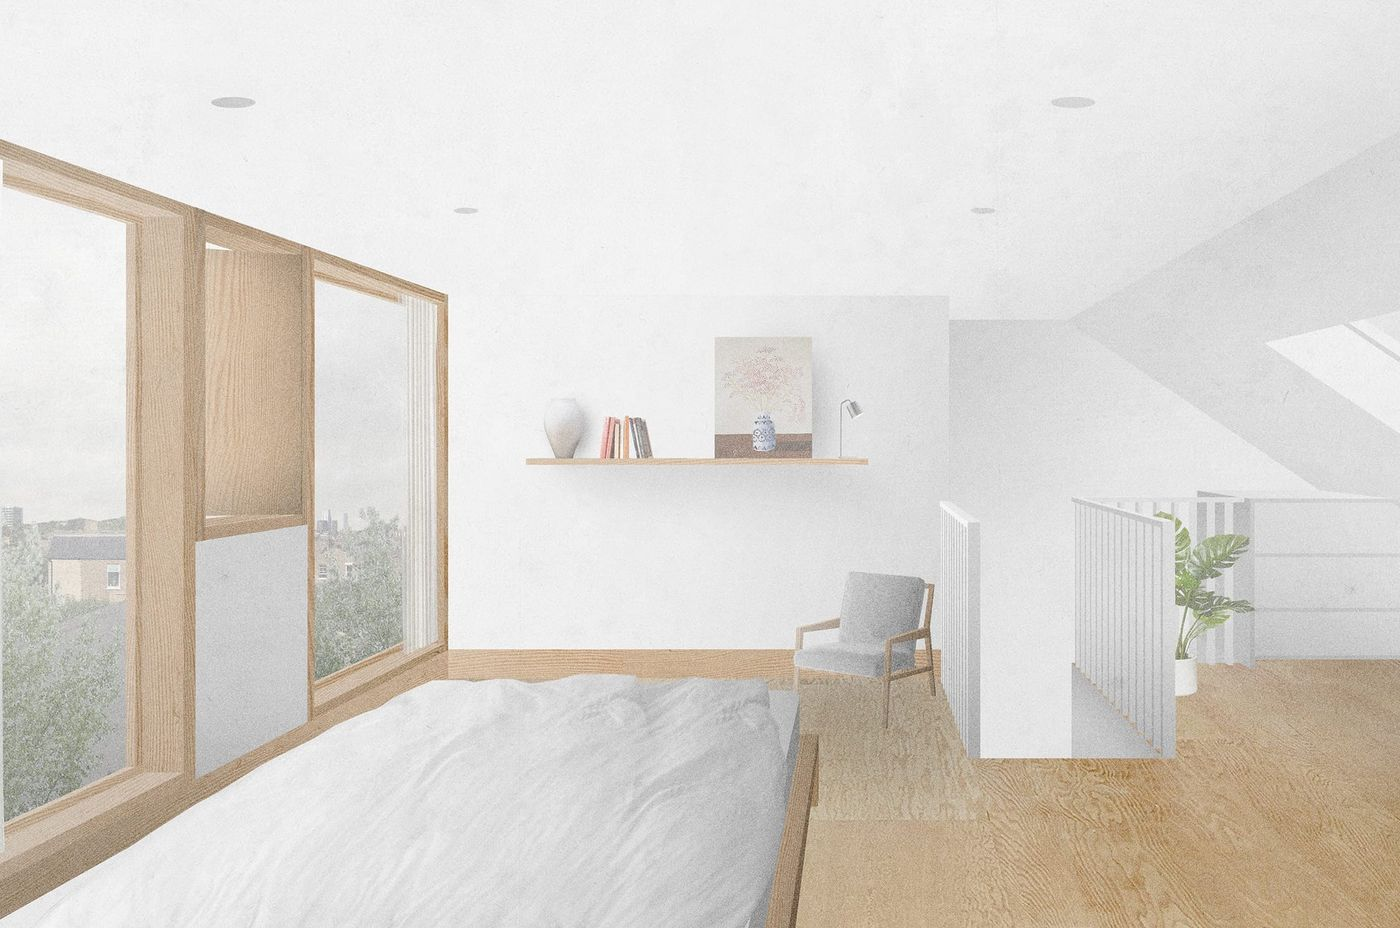 Interior view of the master bedroom within the proposed rear dormer extension and loft conversion at Claude Road, London designed by From Works.